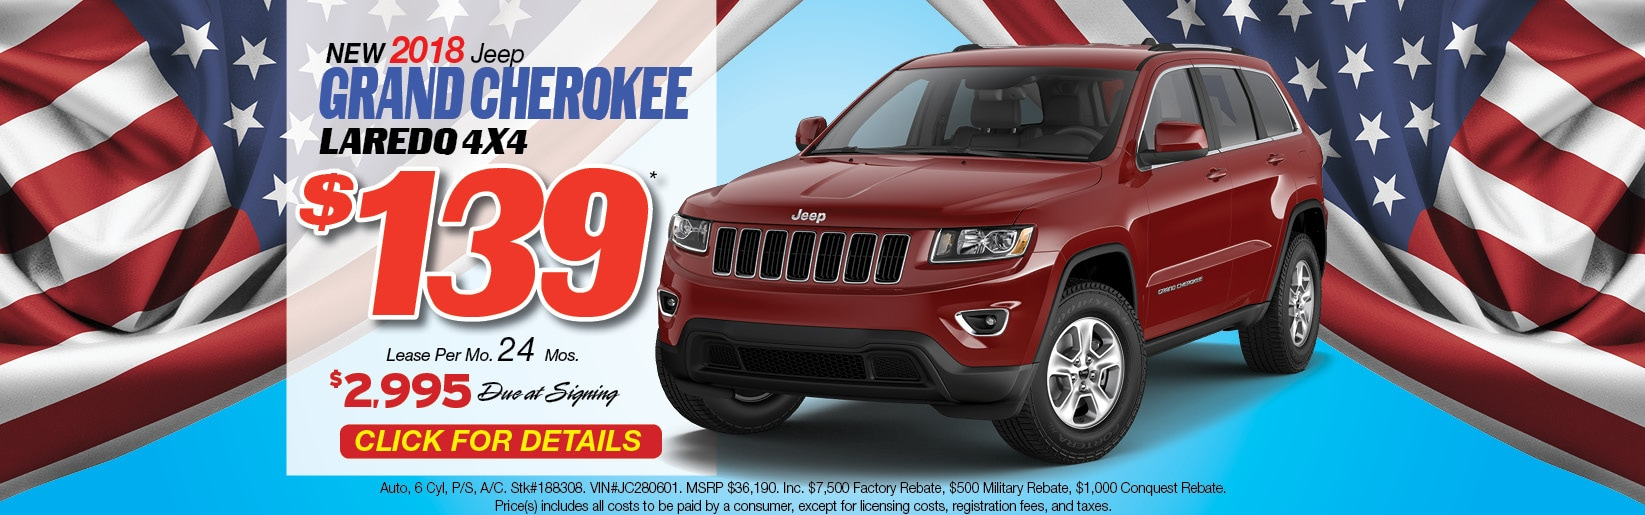 New Jeep Inventory New Jersey | Teterboro Chrysler Jeep ...